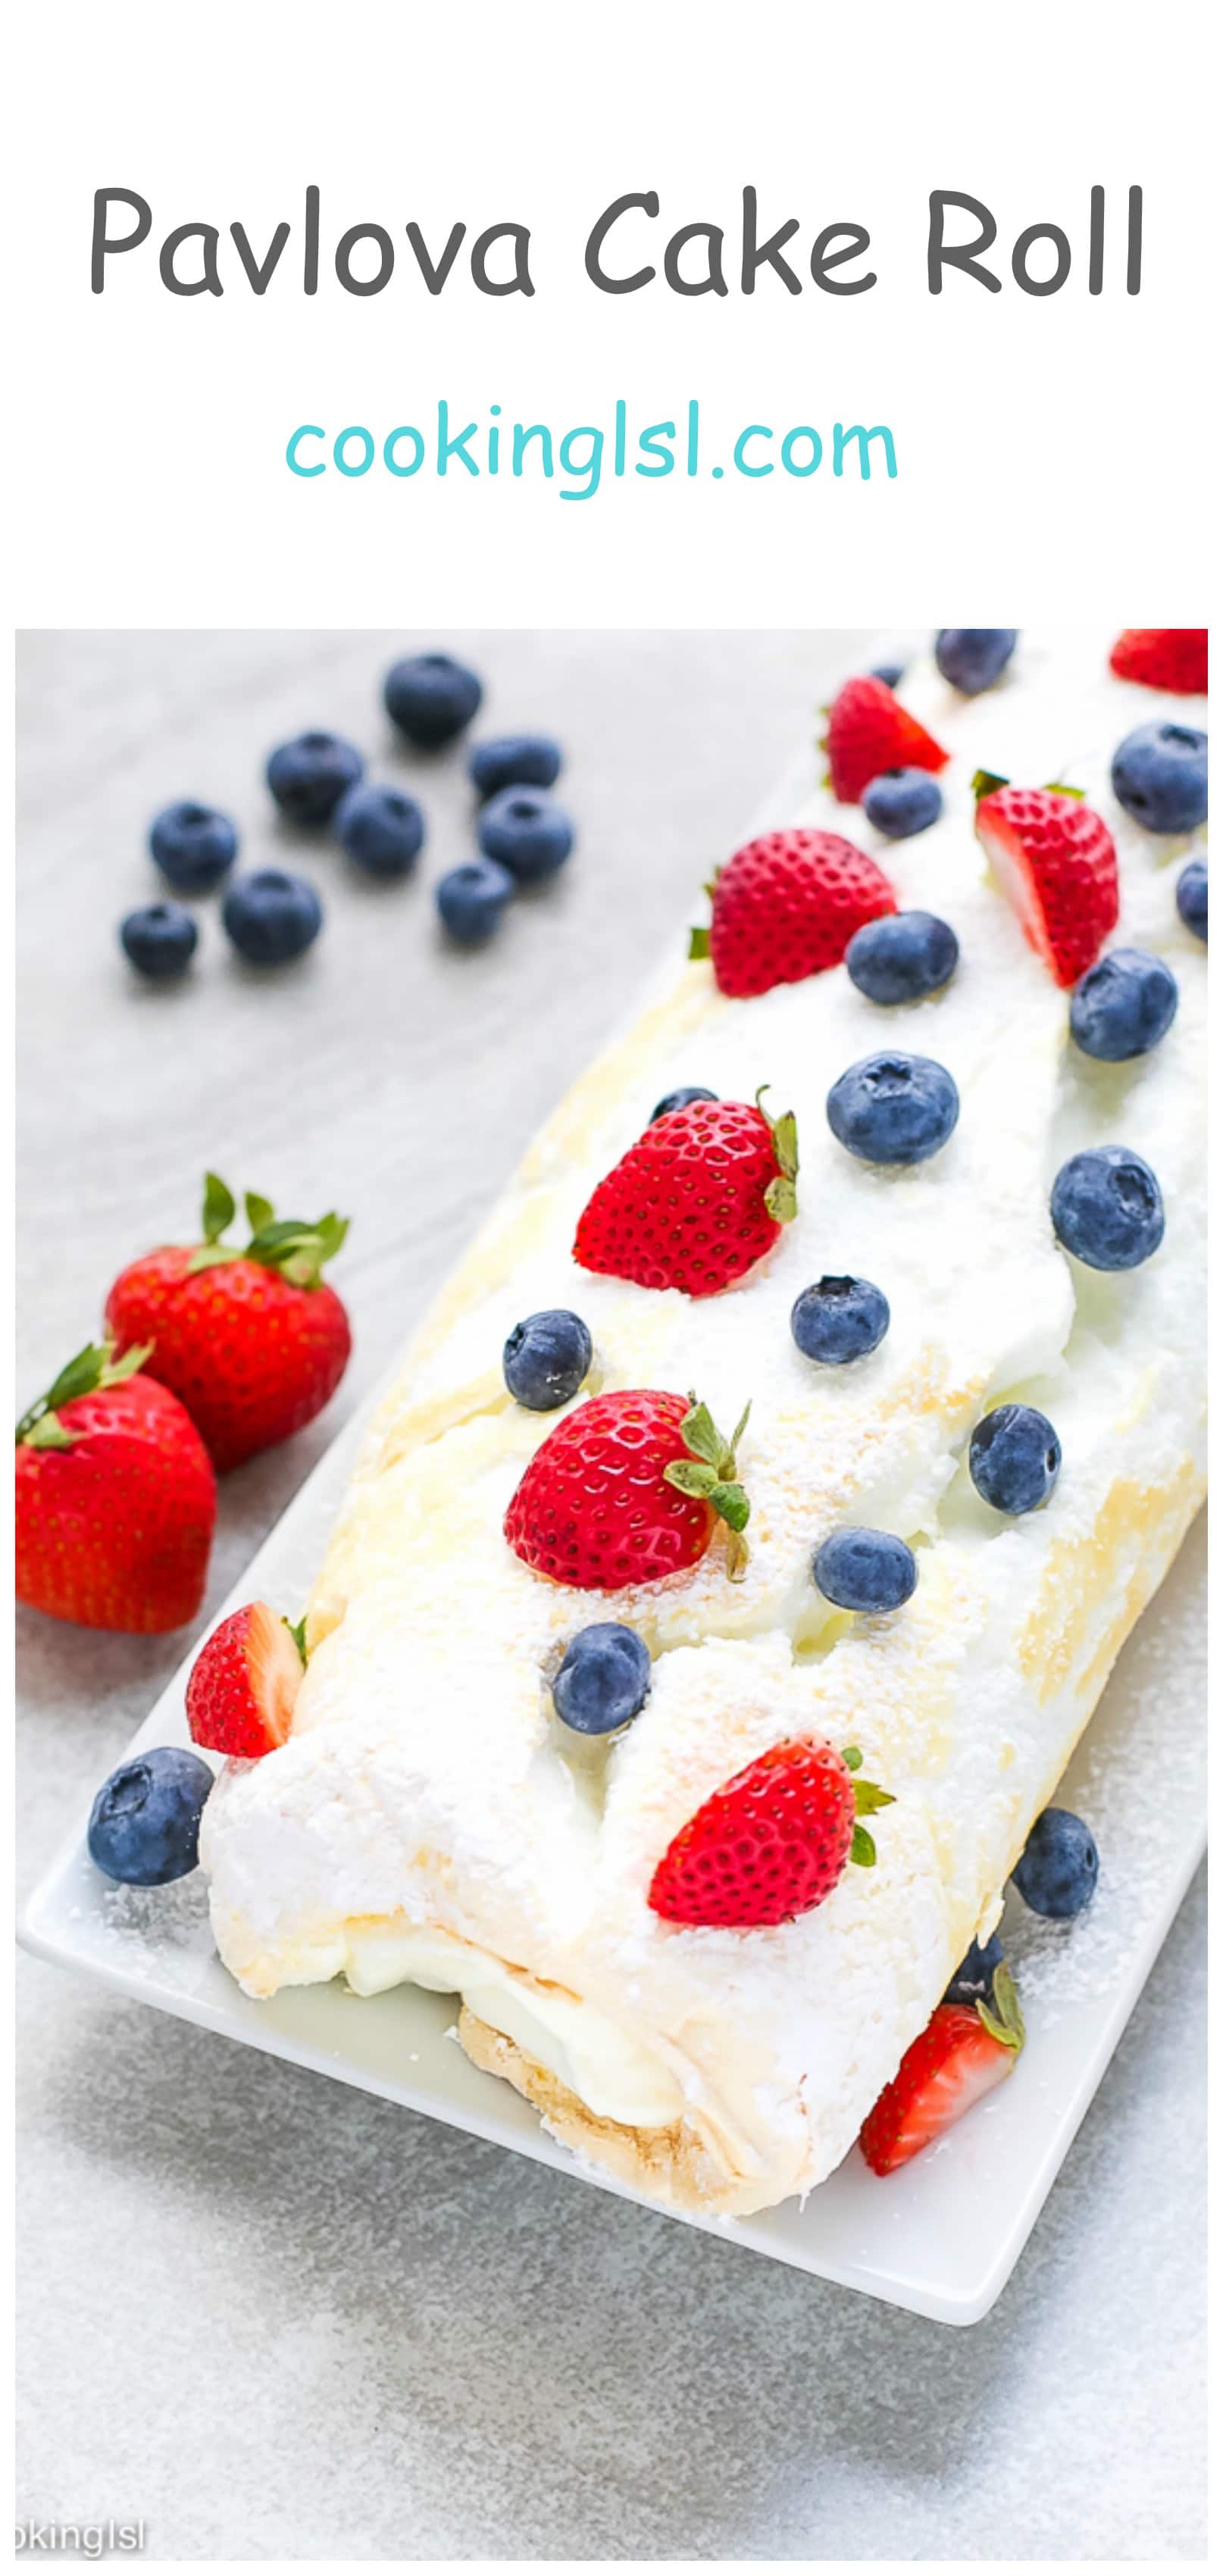 Pavlova Cake Roll Recipe - light and airy cake roll, filled with rich cheesecake whipped cream and topped with berries.